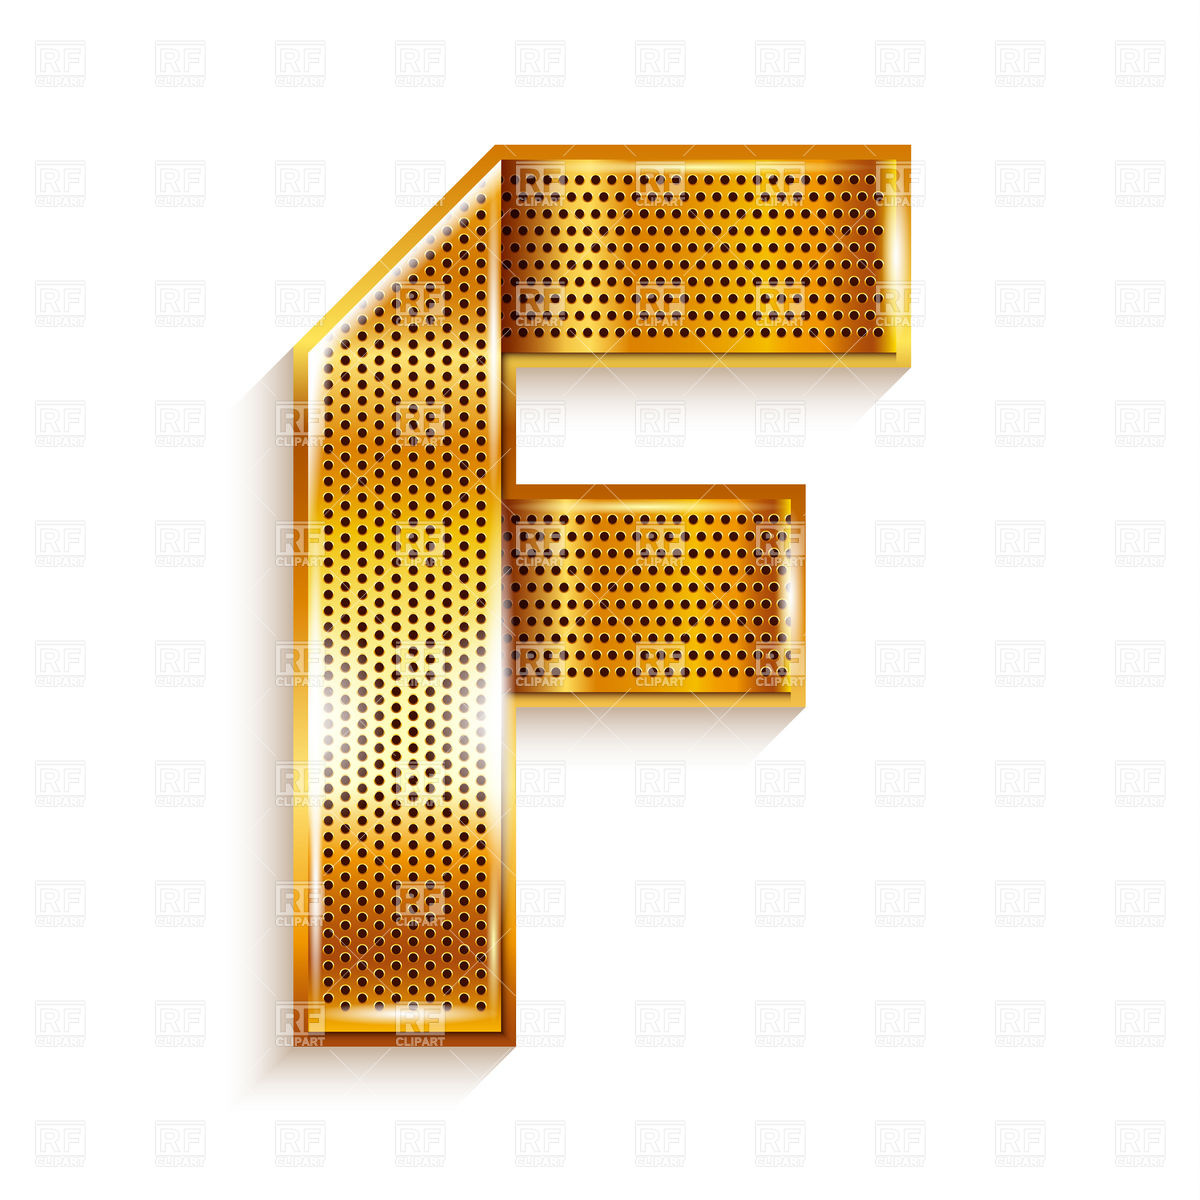 1200x1200 Alphabet Made Of Golden Perforated Tape, Letter F Vector Image